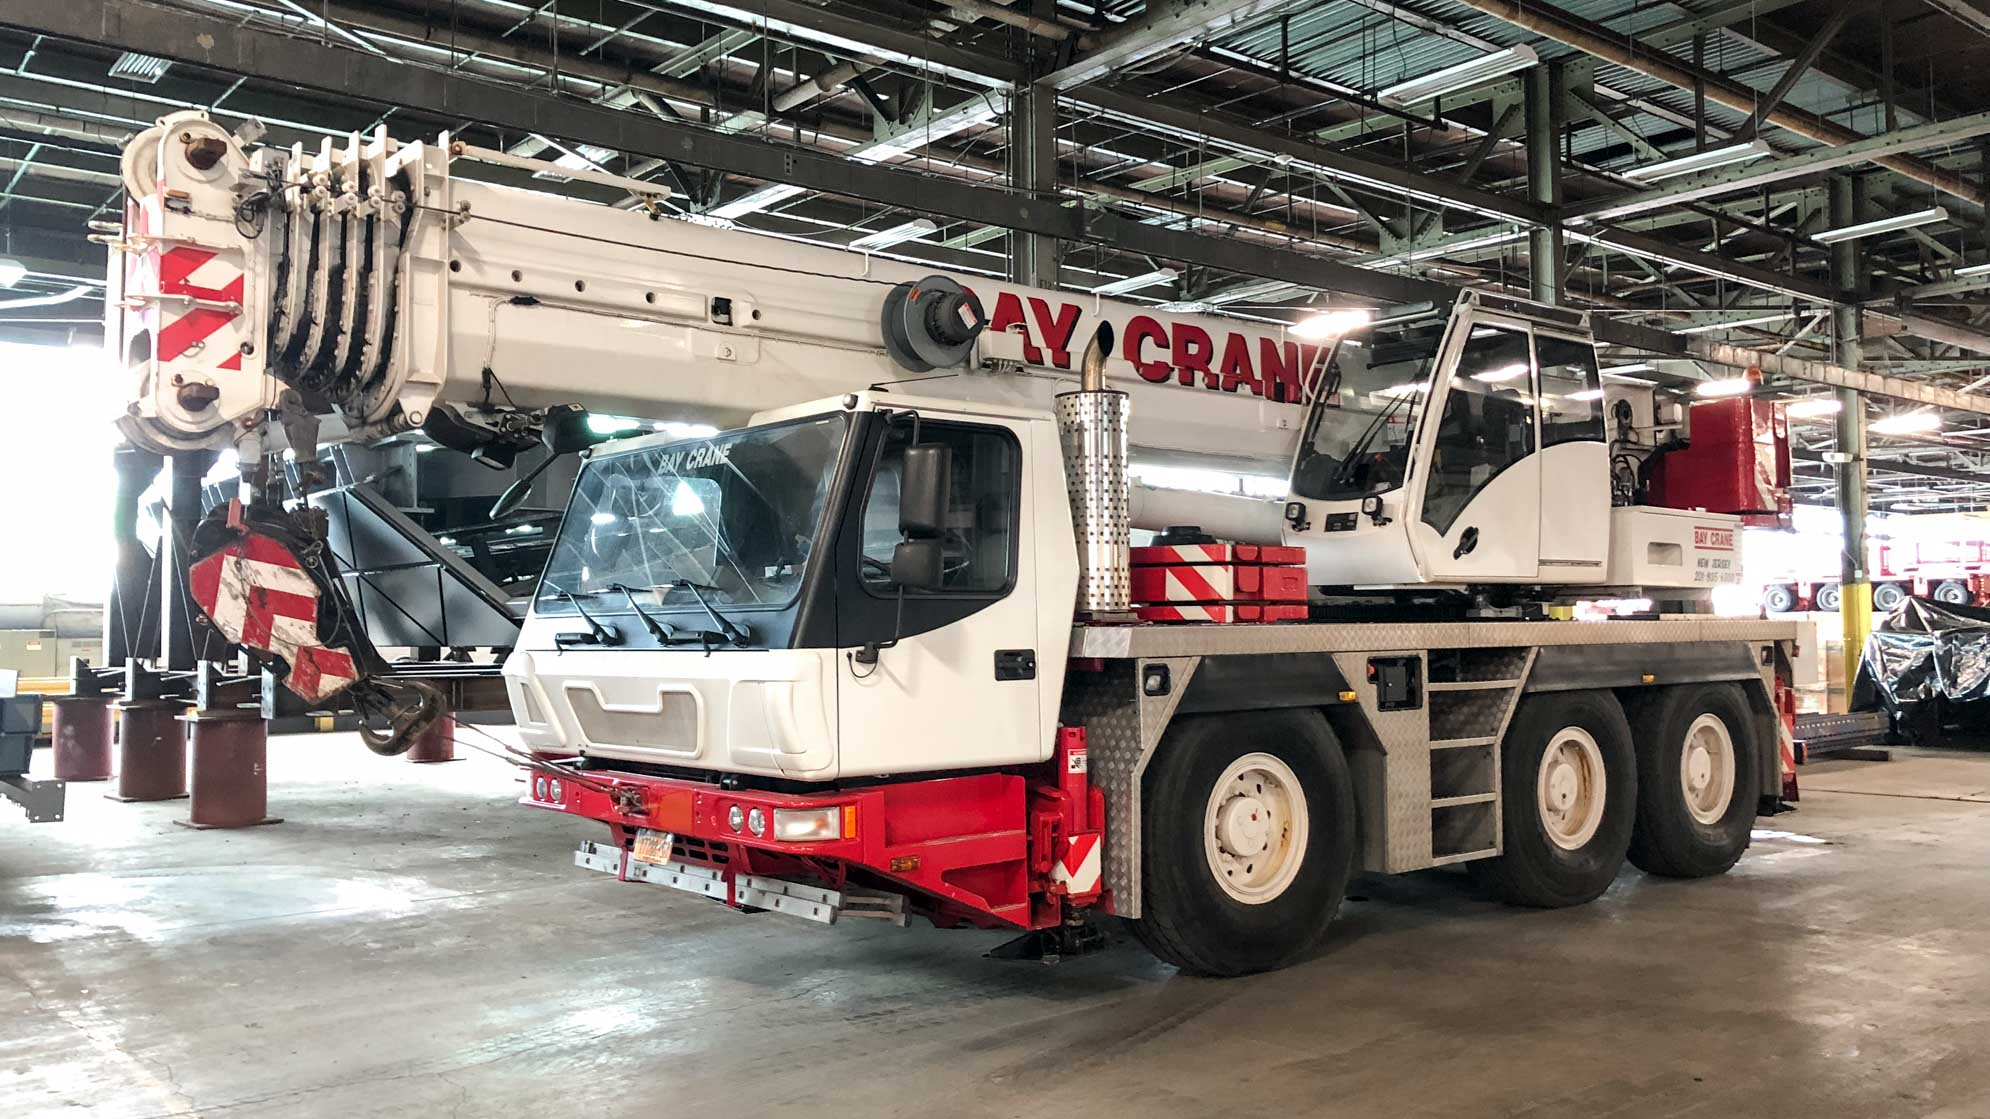 GMK 3055 crane with a hydraulic expandable